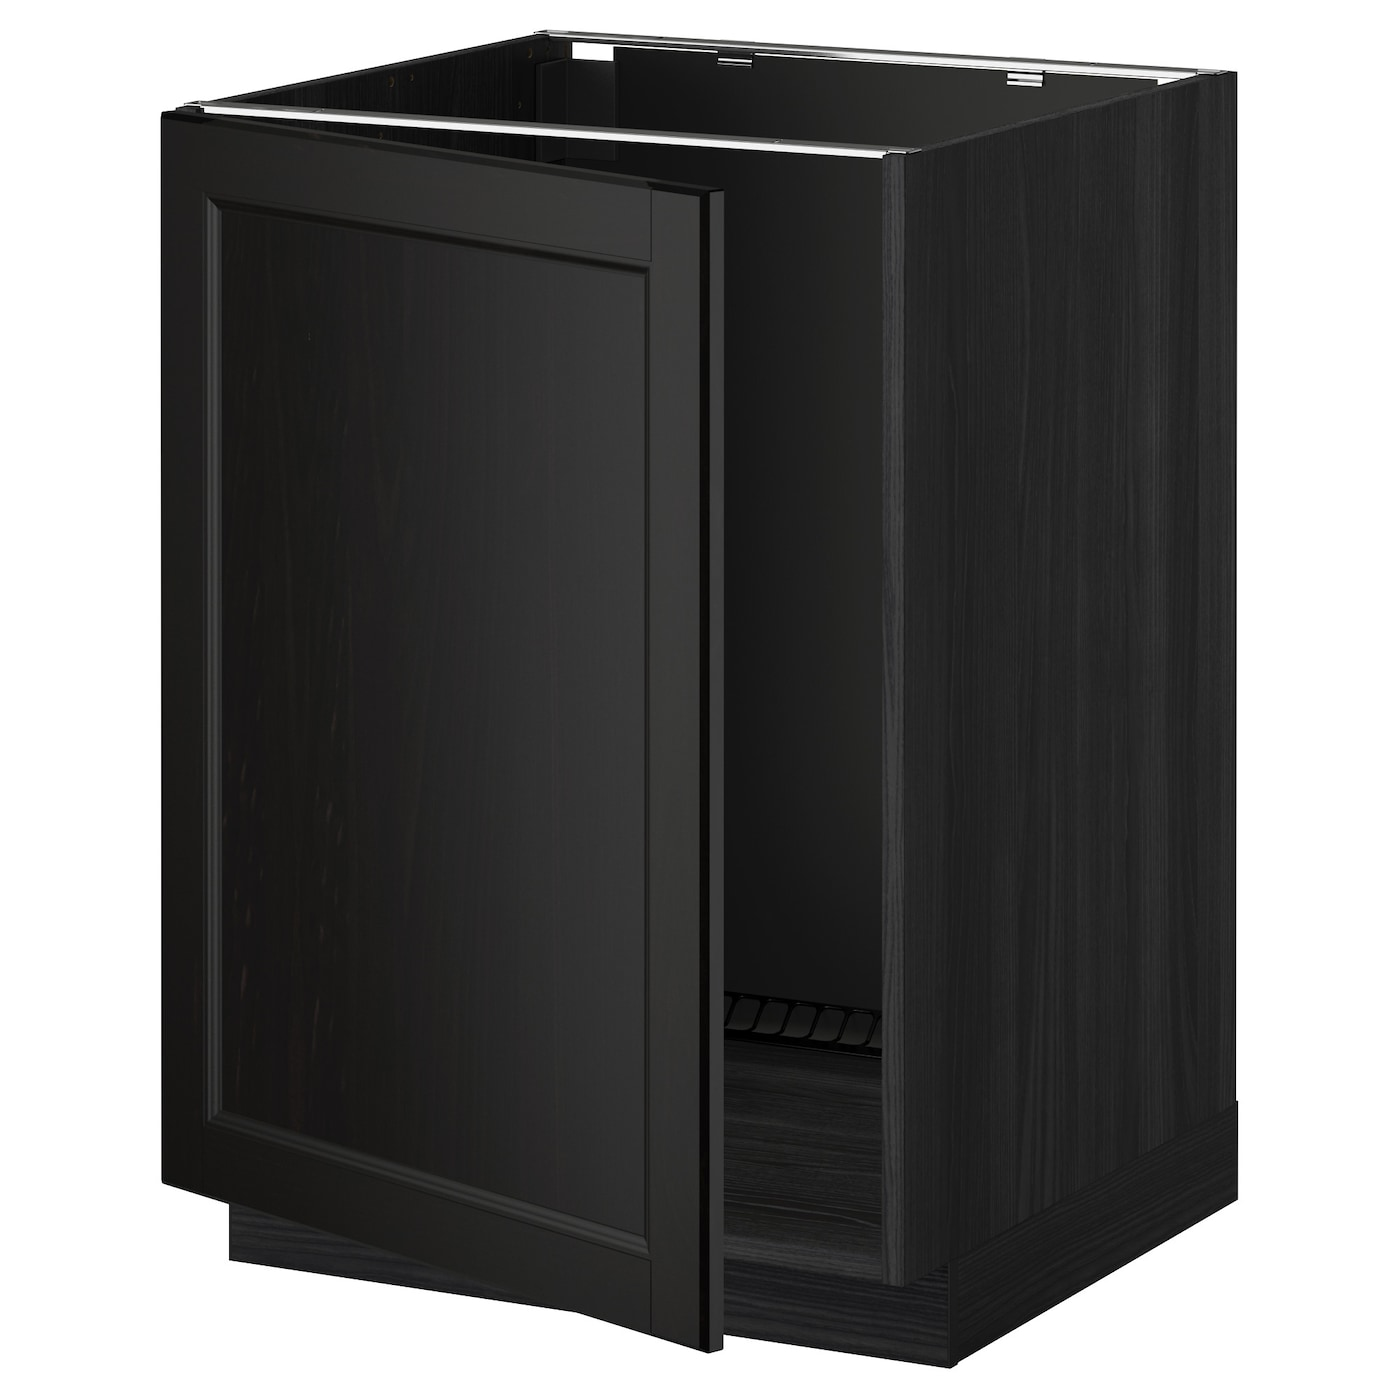 Ikea Kitchen Black Cabinets: METOD Base Cabinet For Sink Black/laxarby Black-brown